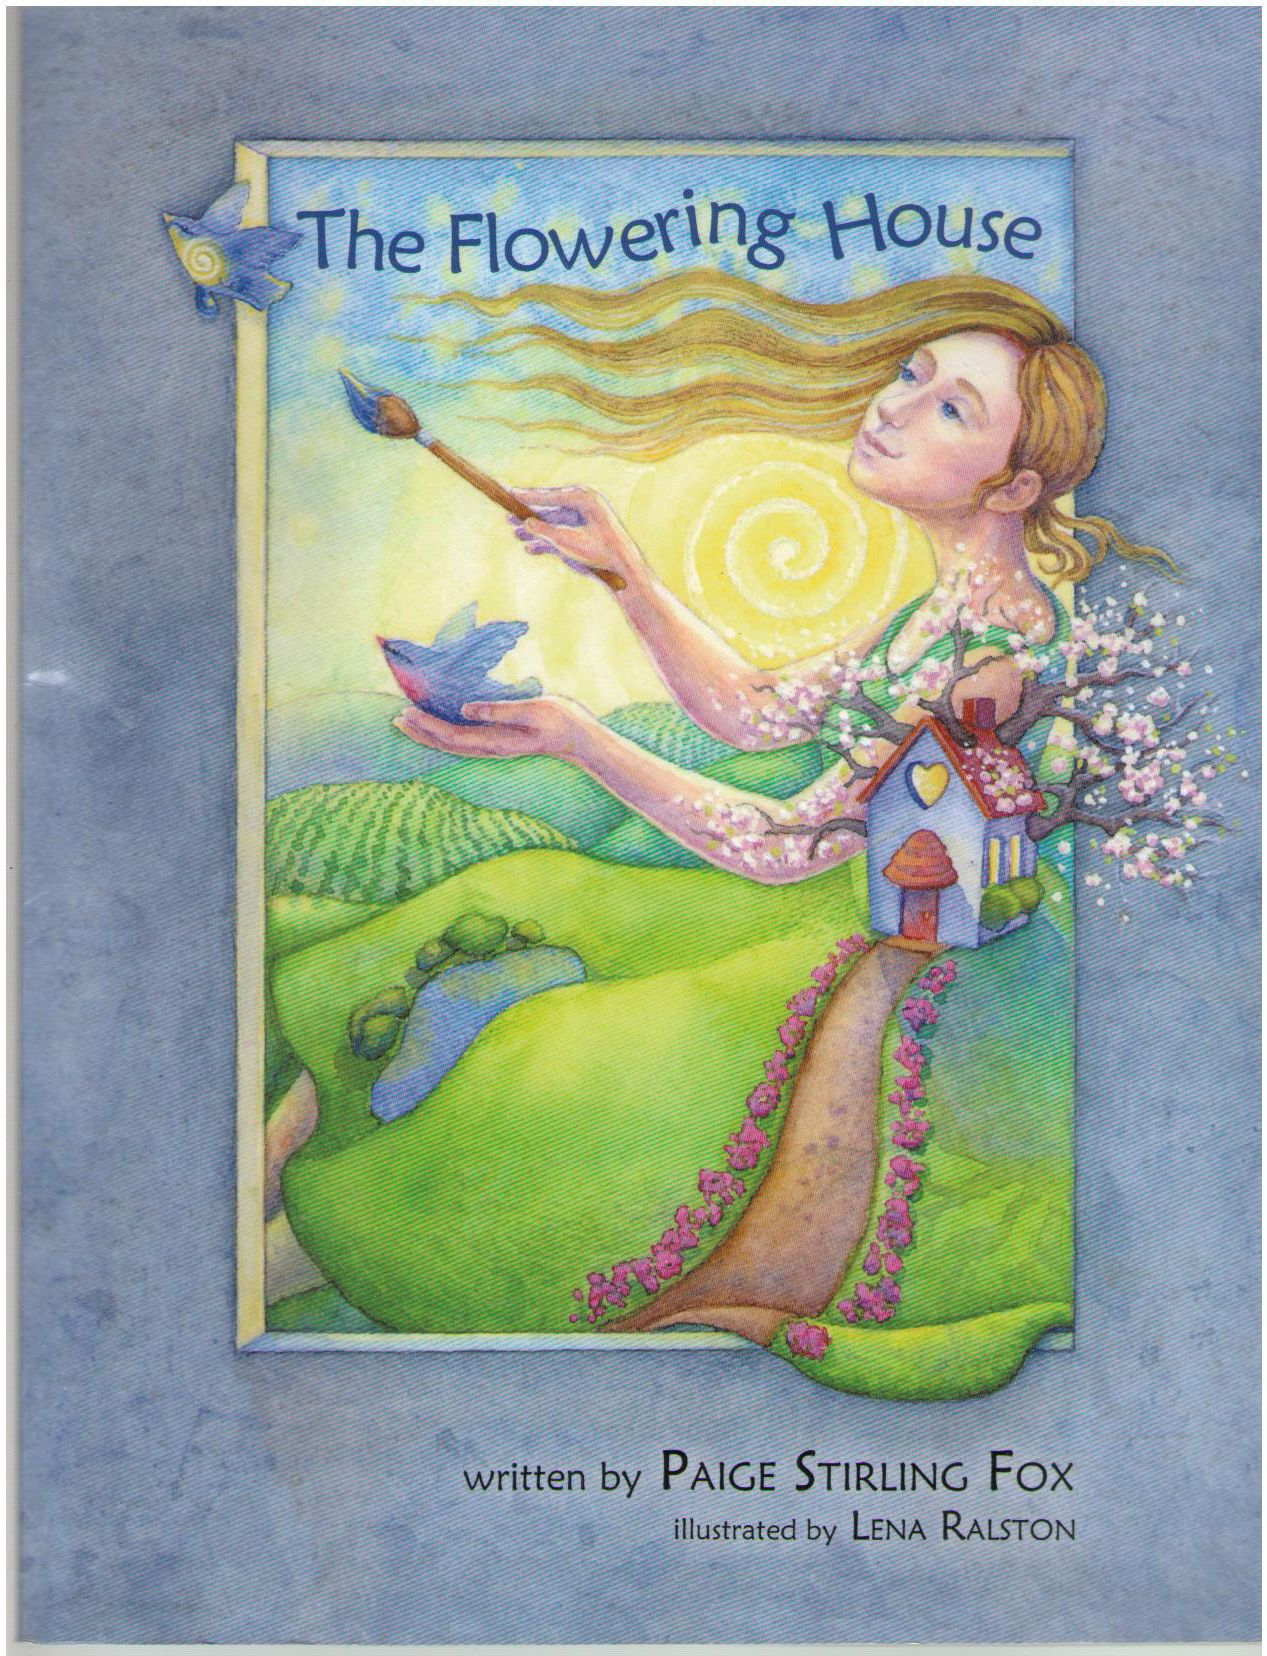 The Flowering House